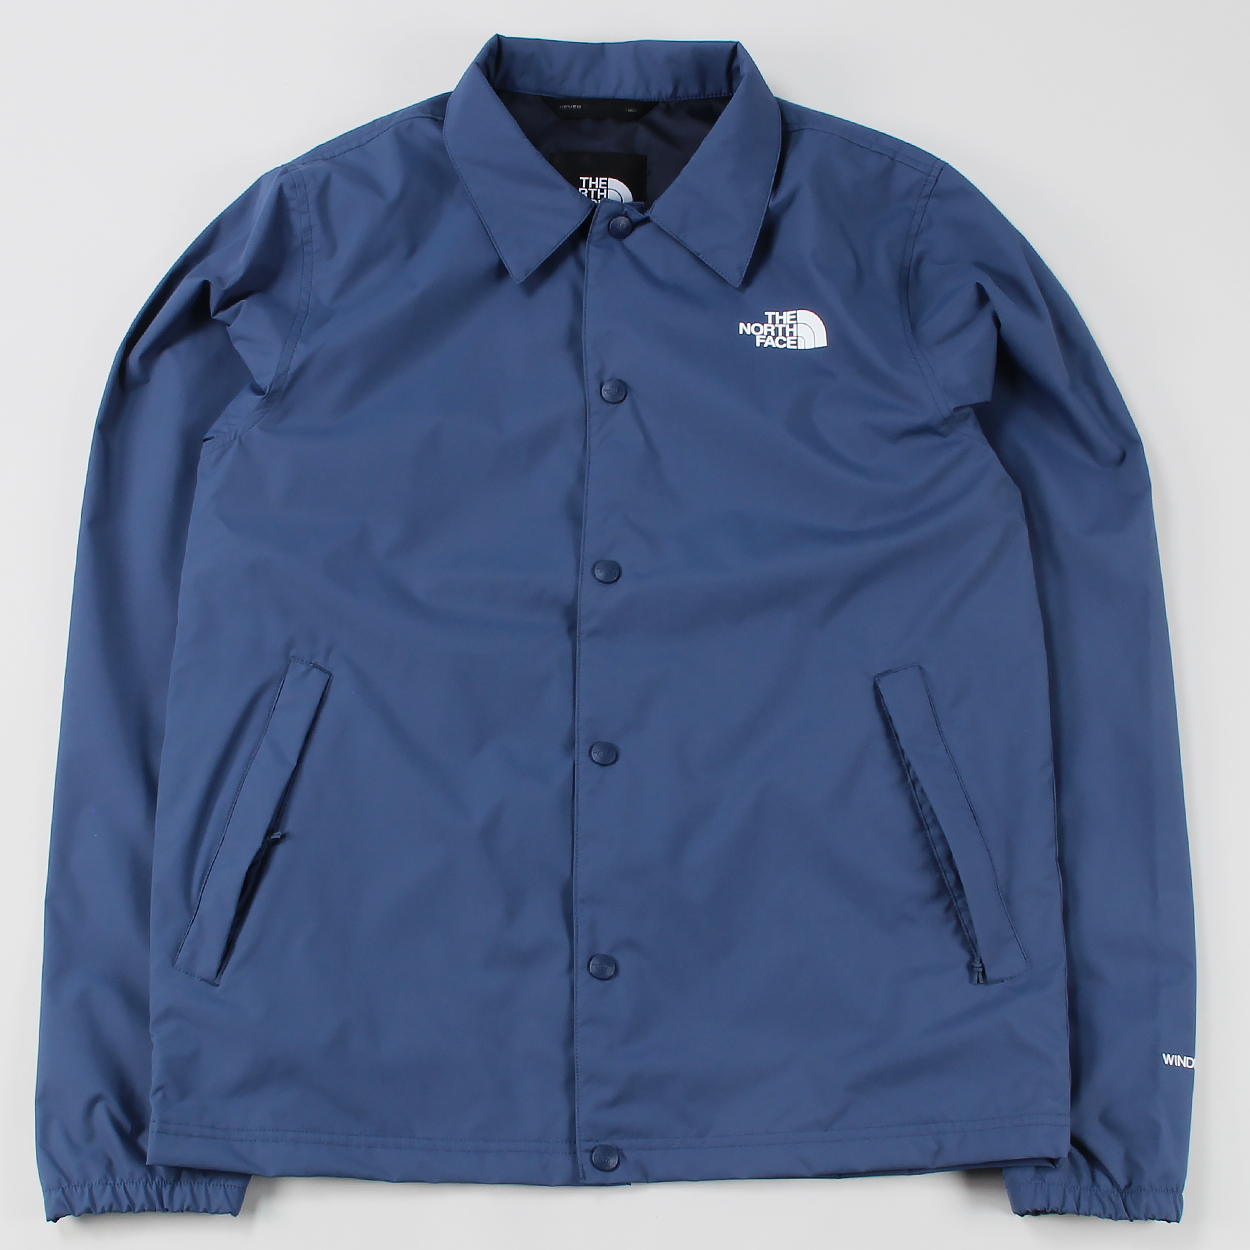 The North Face Mens Snap Button Coach Jacket Shady Blue Windproof £75.00 9298df79fcd7